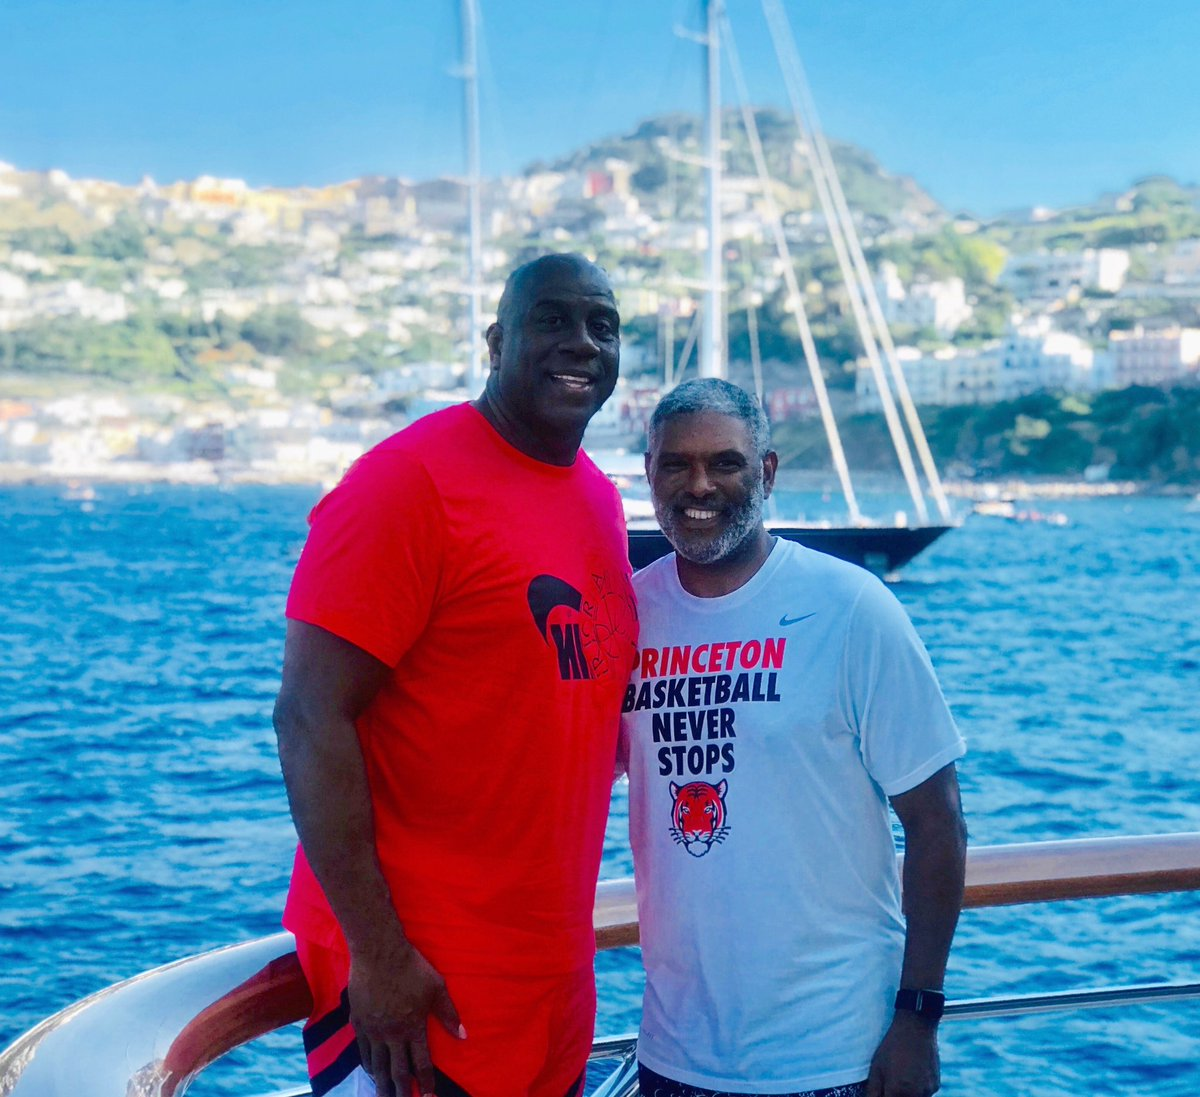 RT @MagicJohnson: Hanging out with my good friend Steve Mills, President of the NY Knicks, outside of Capri! https://t.co/djCEFsAUlr